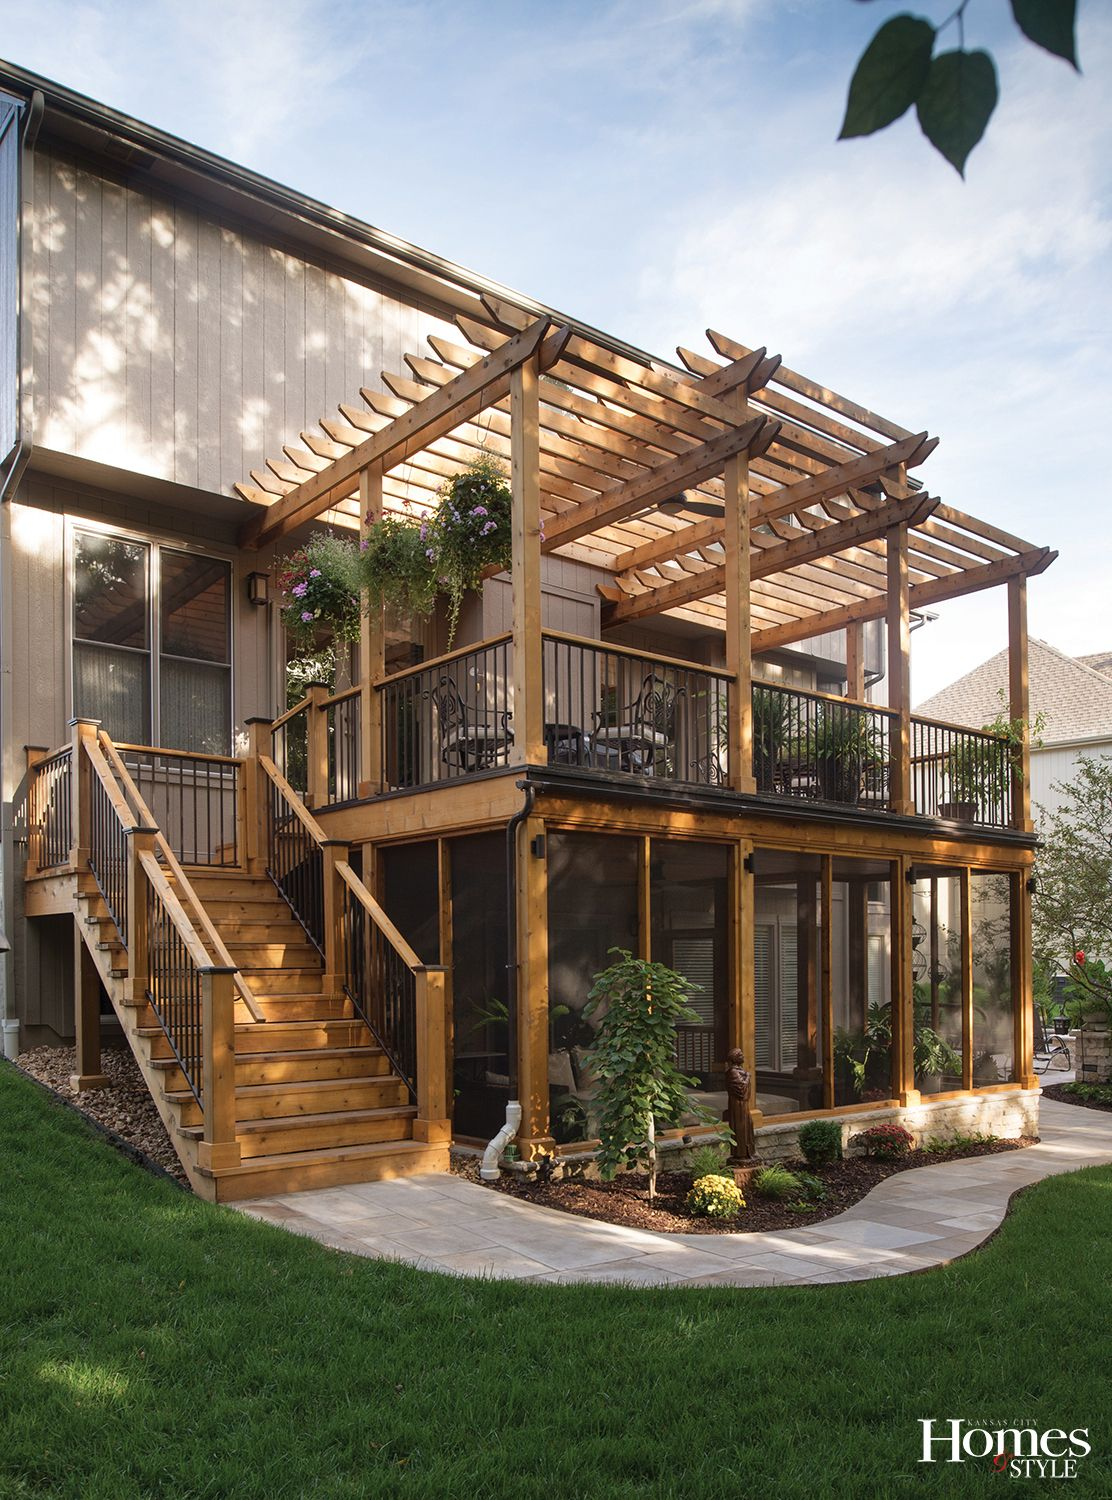 Great Deck Supply | Fireplace: Henges Insulation | Furniture U2013 Screened In Porch: Pottery  Barn | Furniture U2013 Deck: Seasonal Concepts | Hanging Plants U0026 Most .